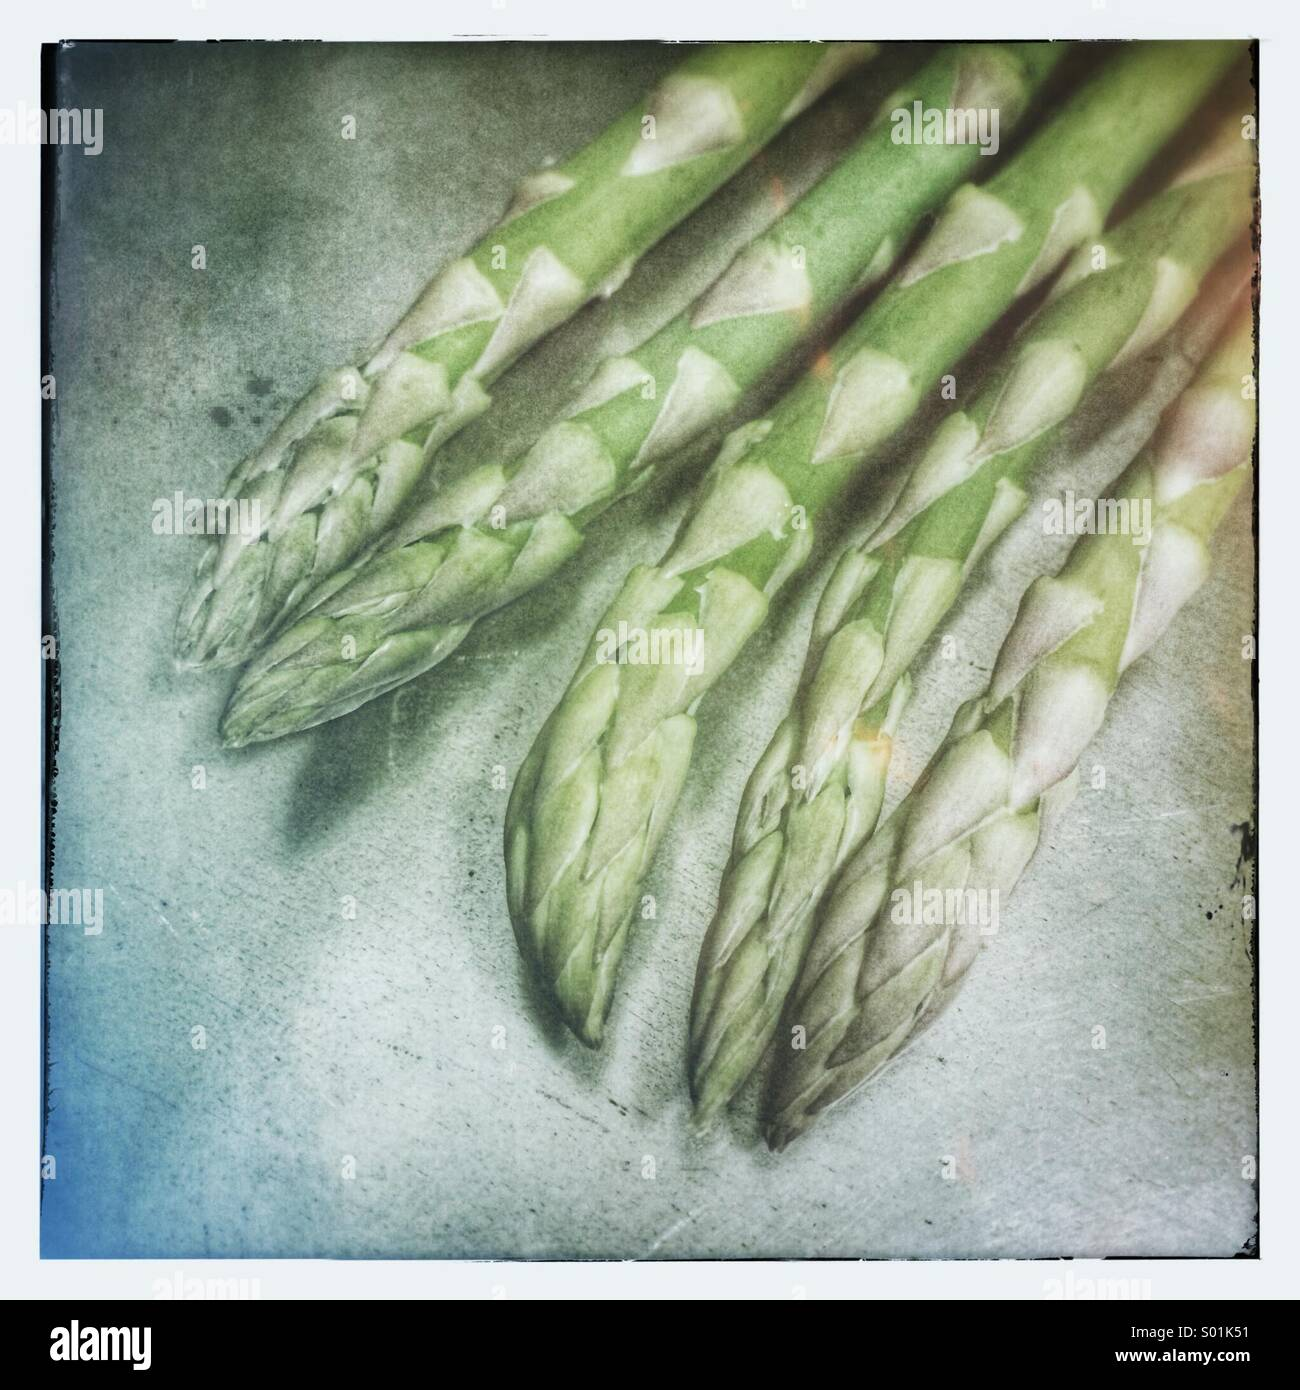 Asparagus tips - Stock Image